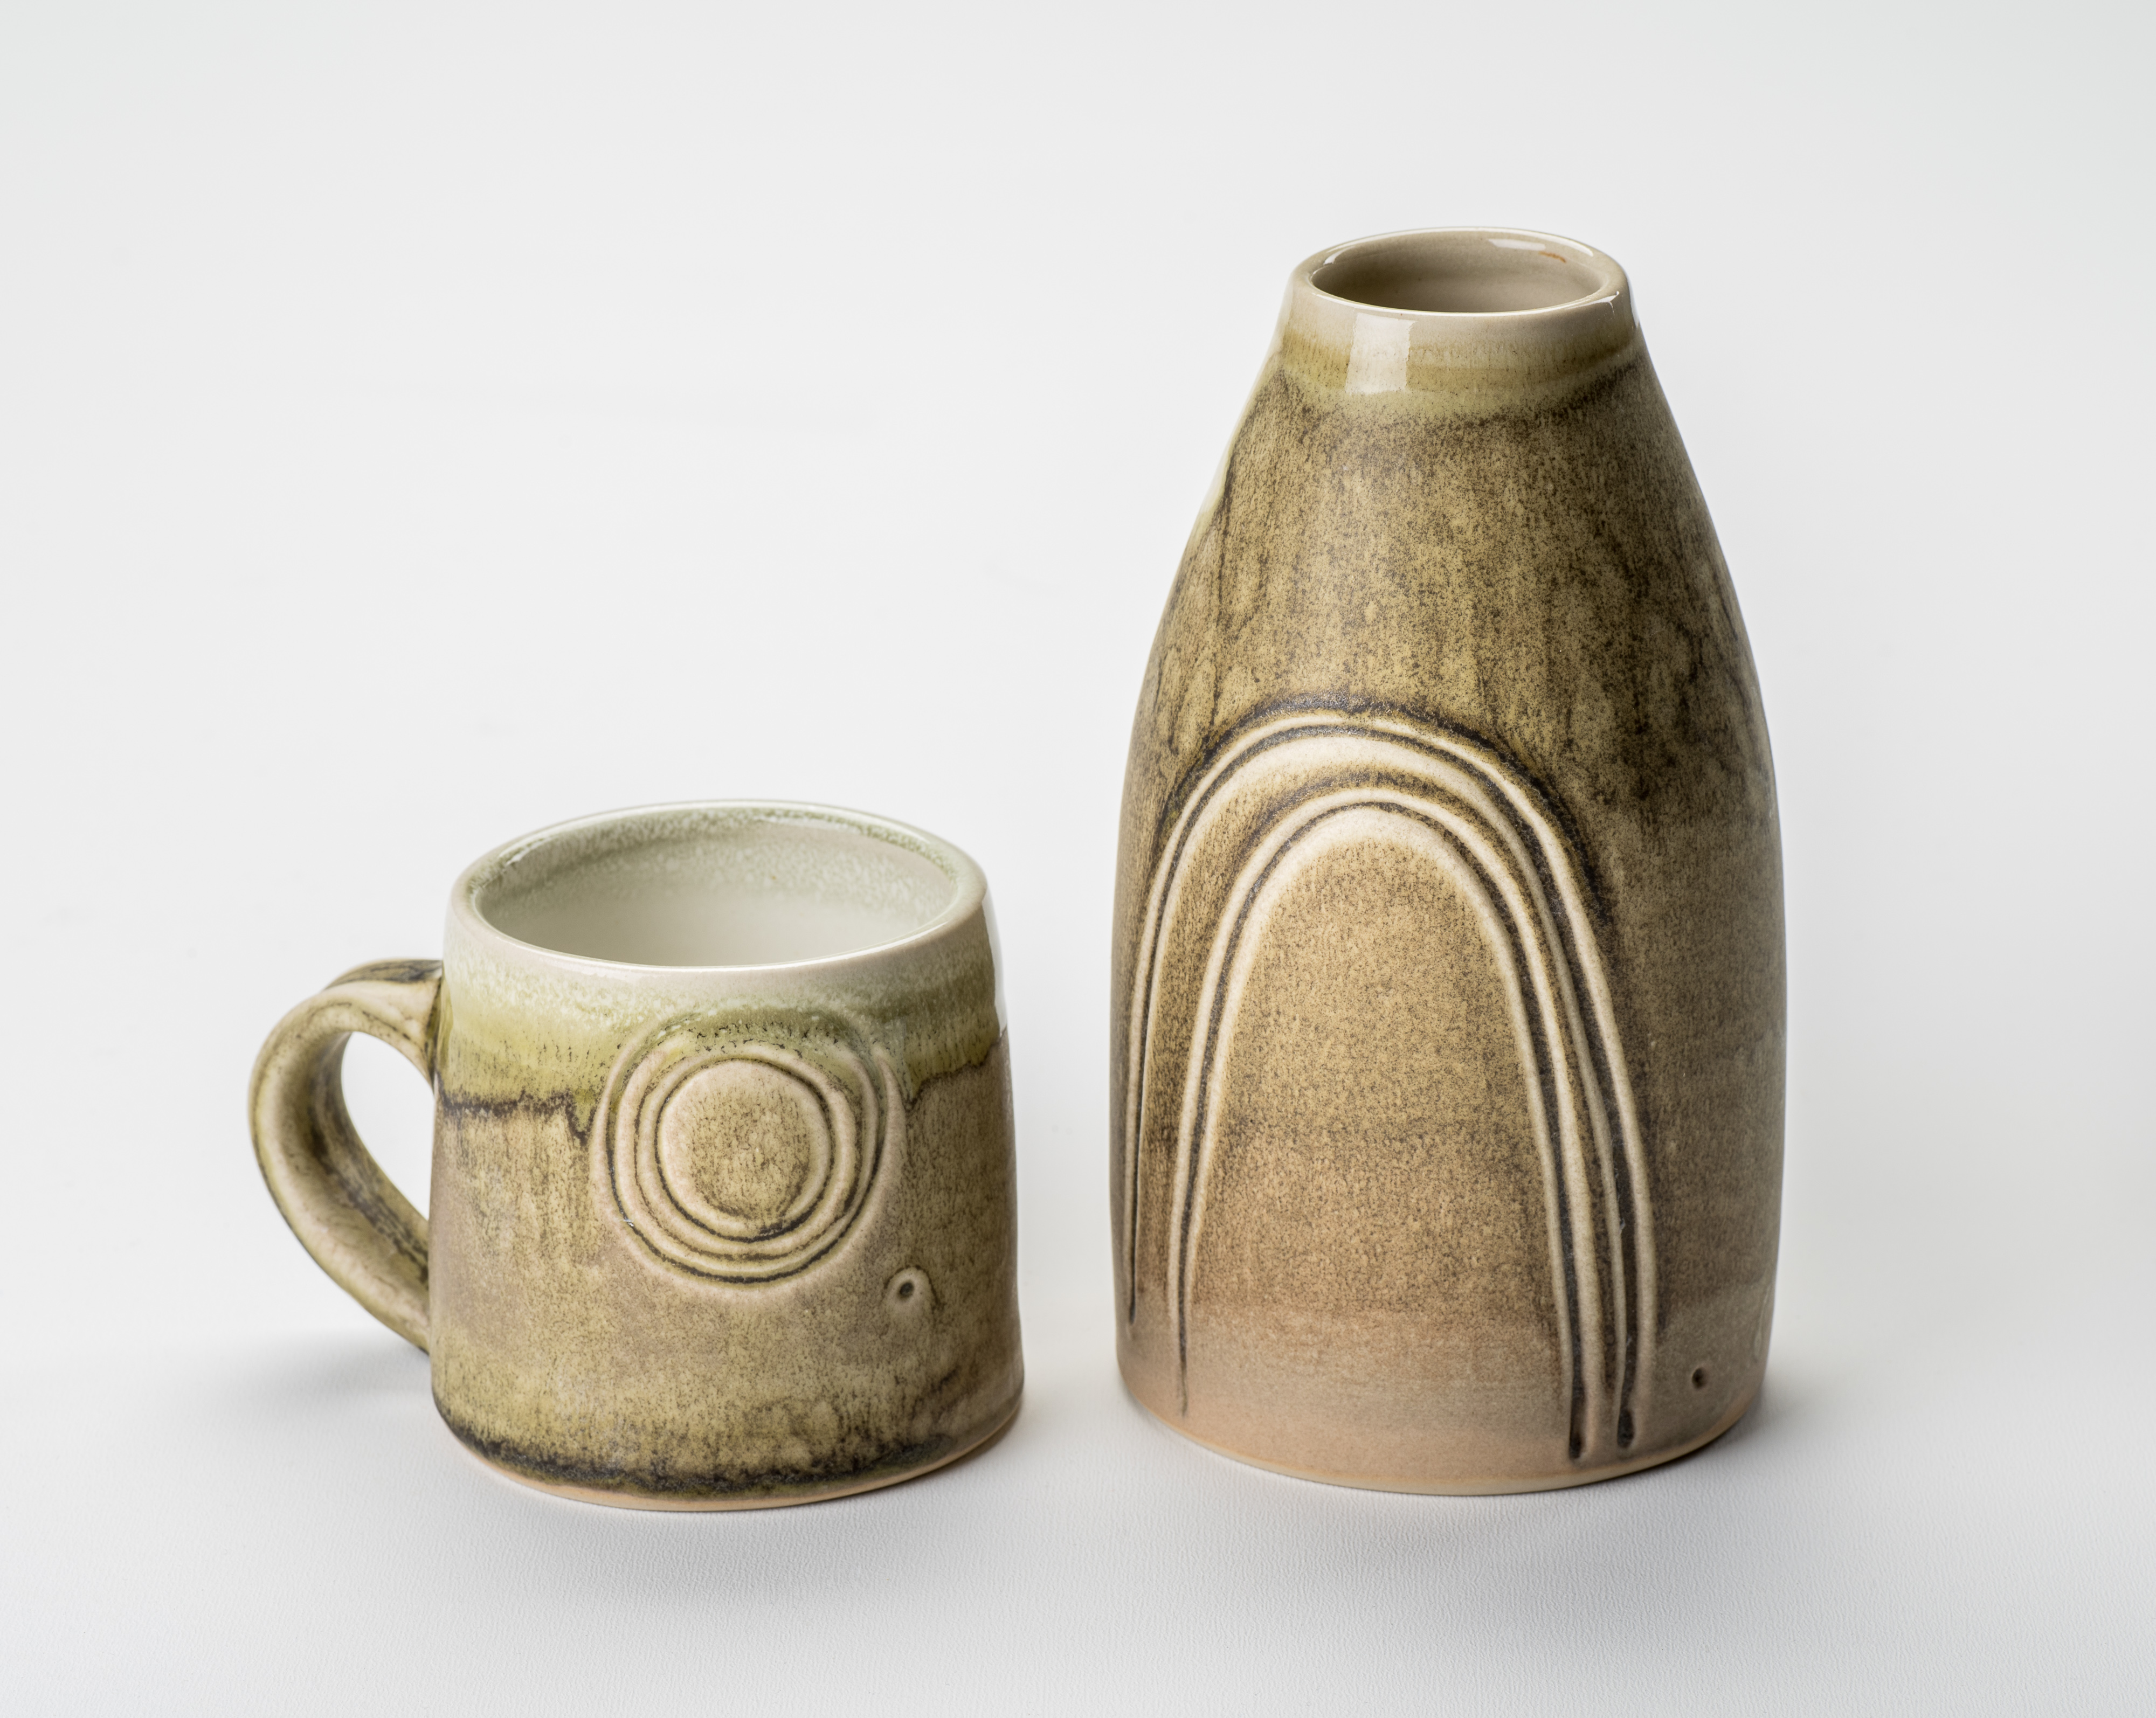 Vase and Mug  - photo by J Addington